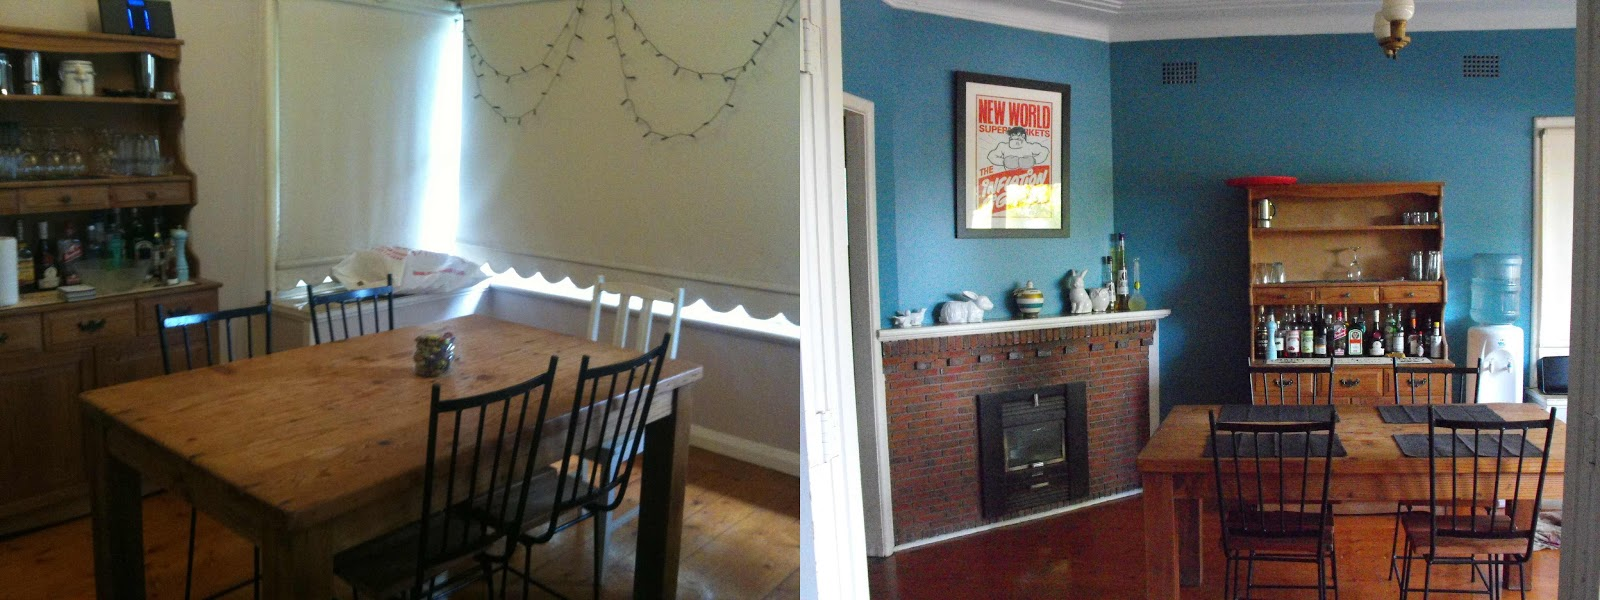 Teal dining room ideas for Teal dining room decorating ideas